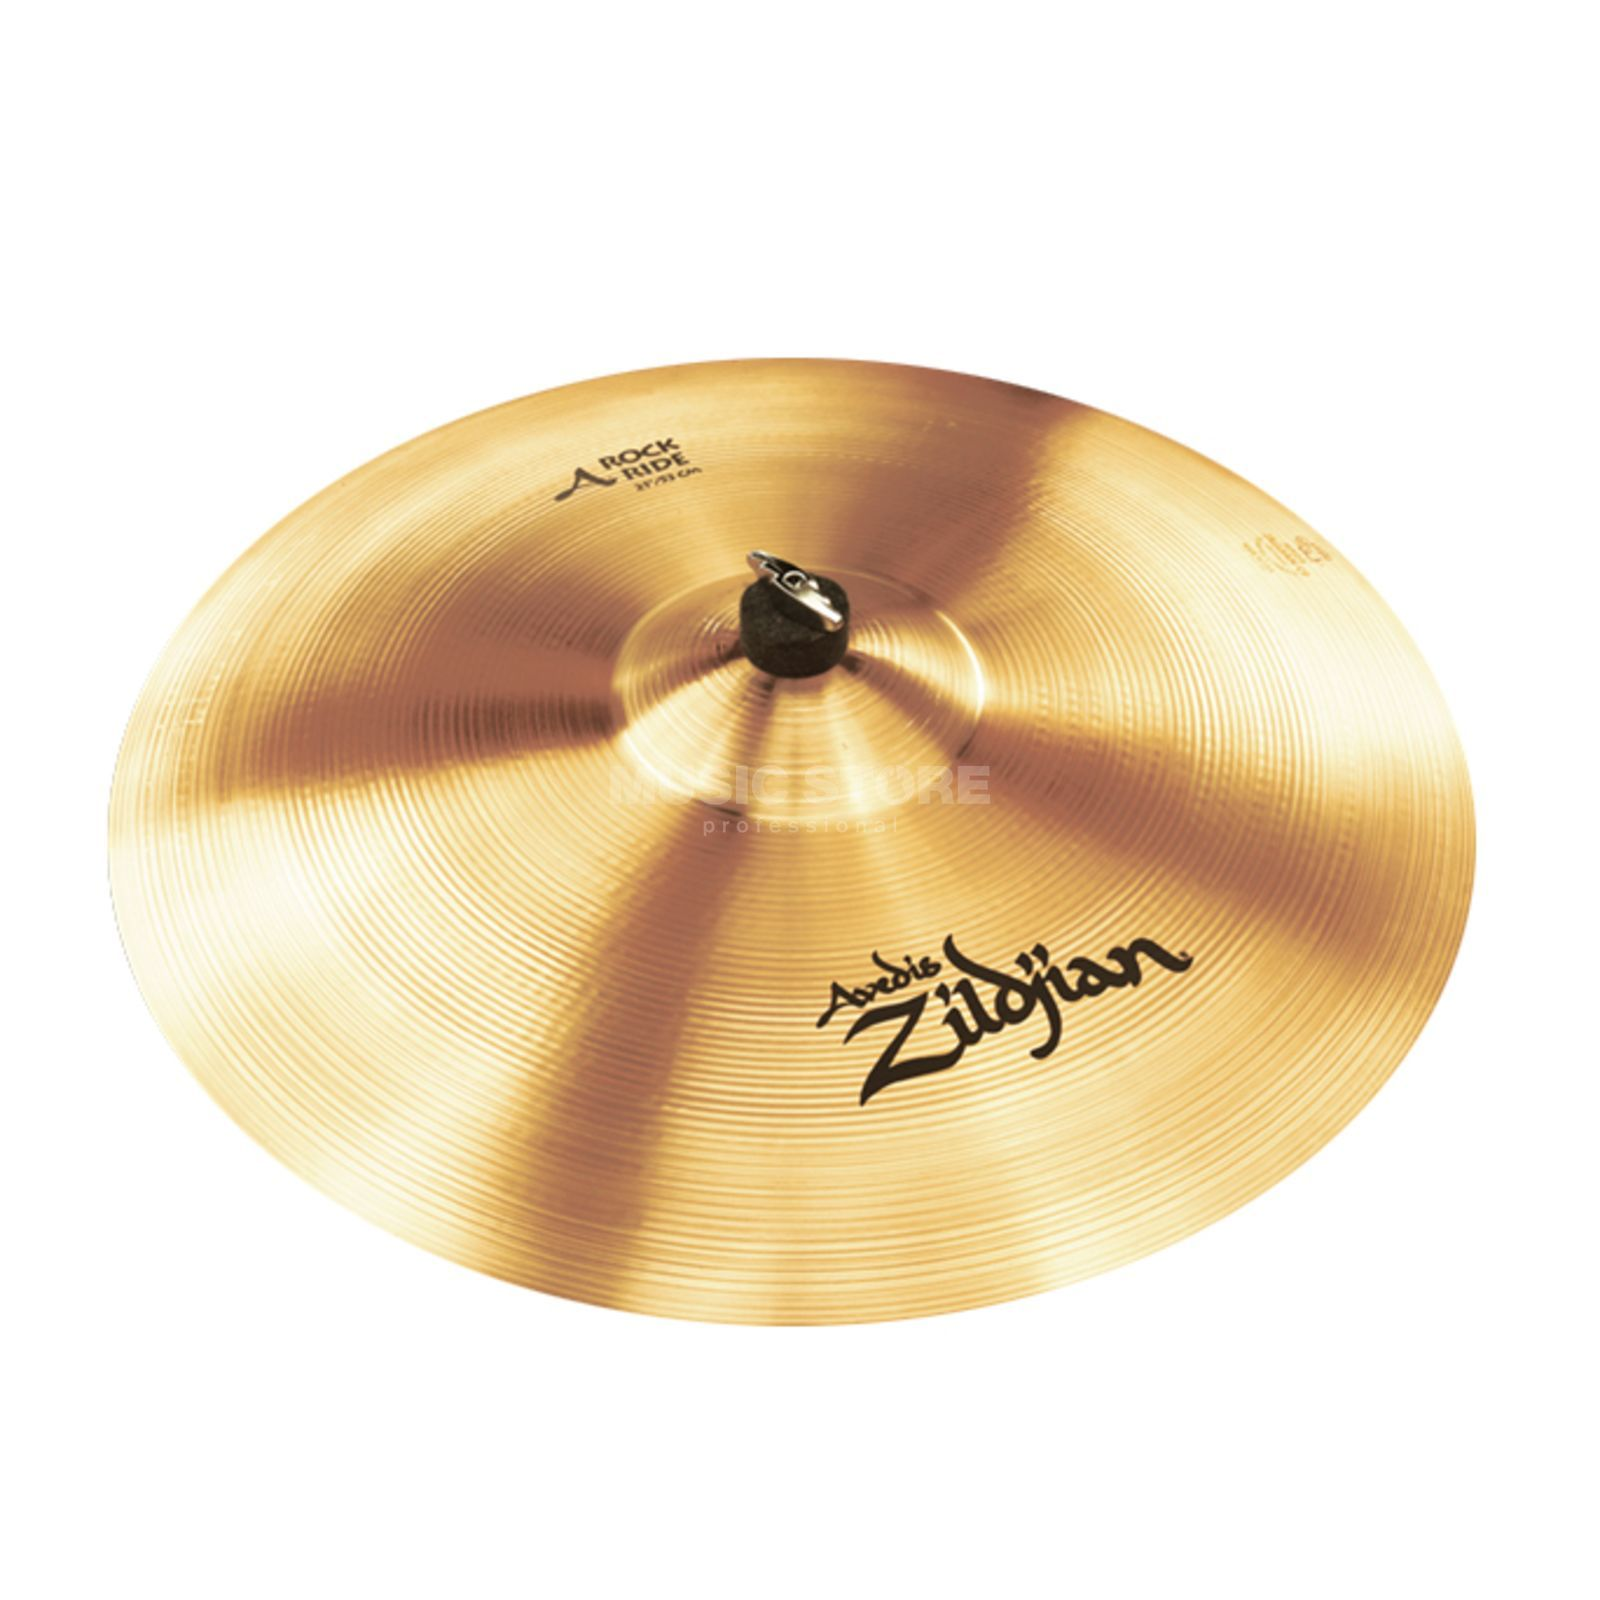 "Zildjian A' Zildjian Rock Ride 21"", Traditional Finish Immagine prodotto"